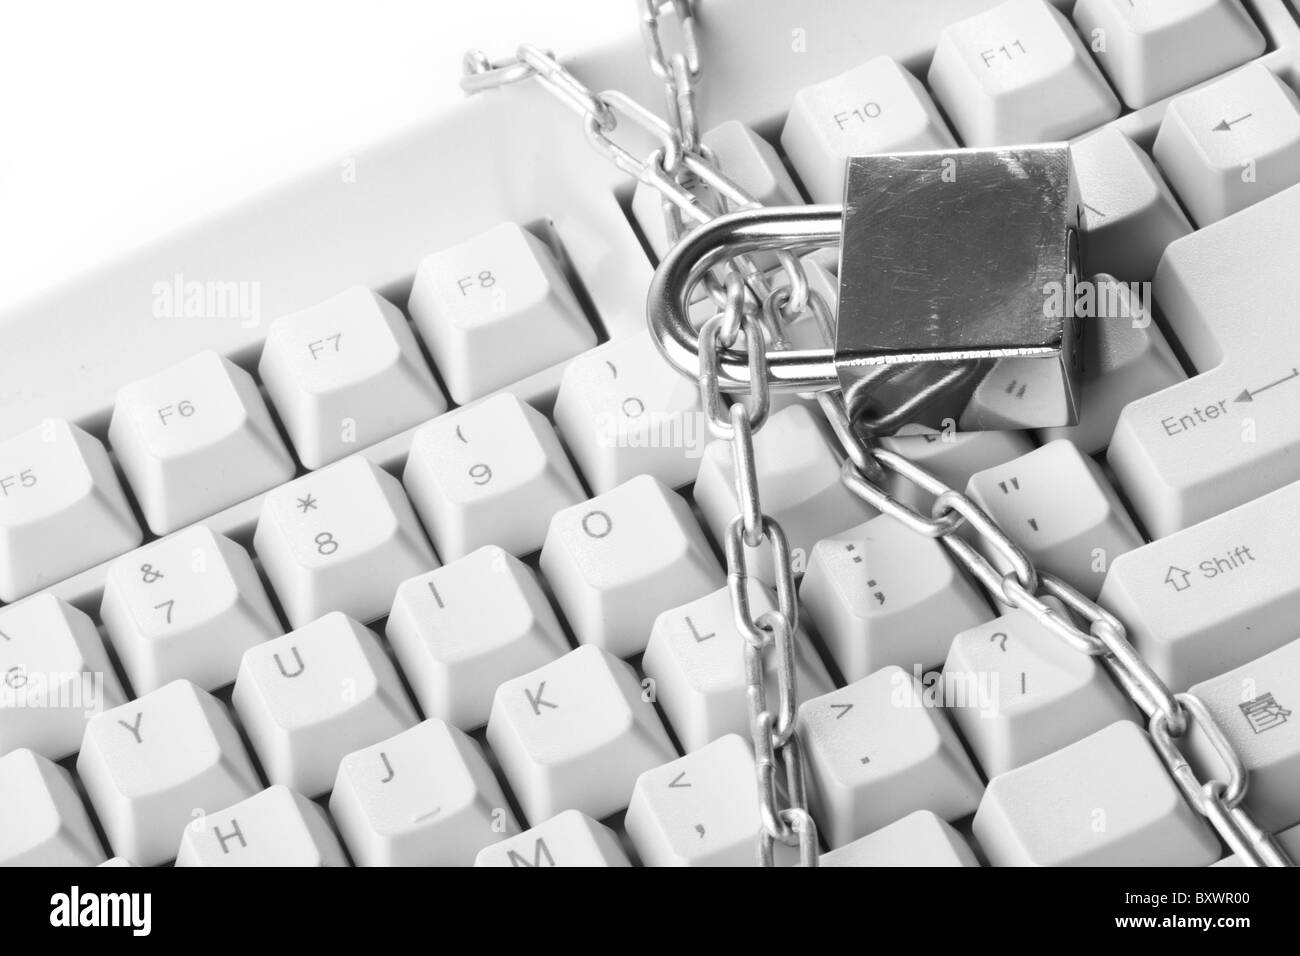 Computer keyboard secured with chain and padlock - Stock Image